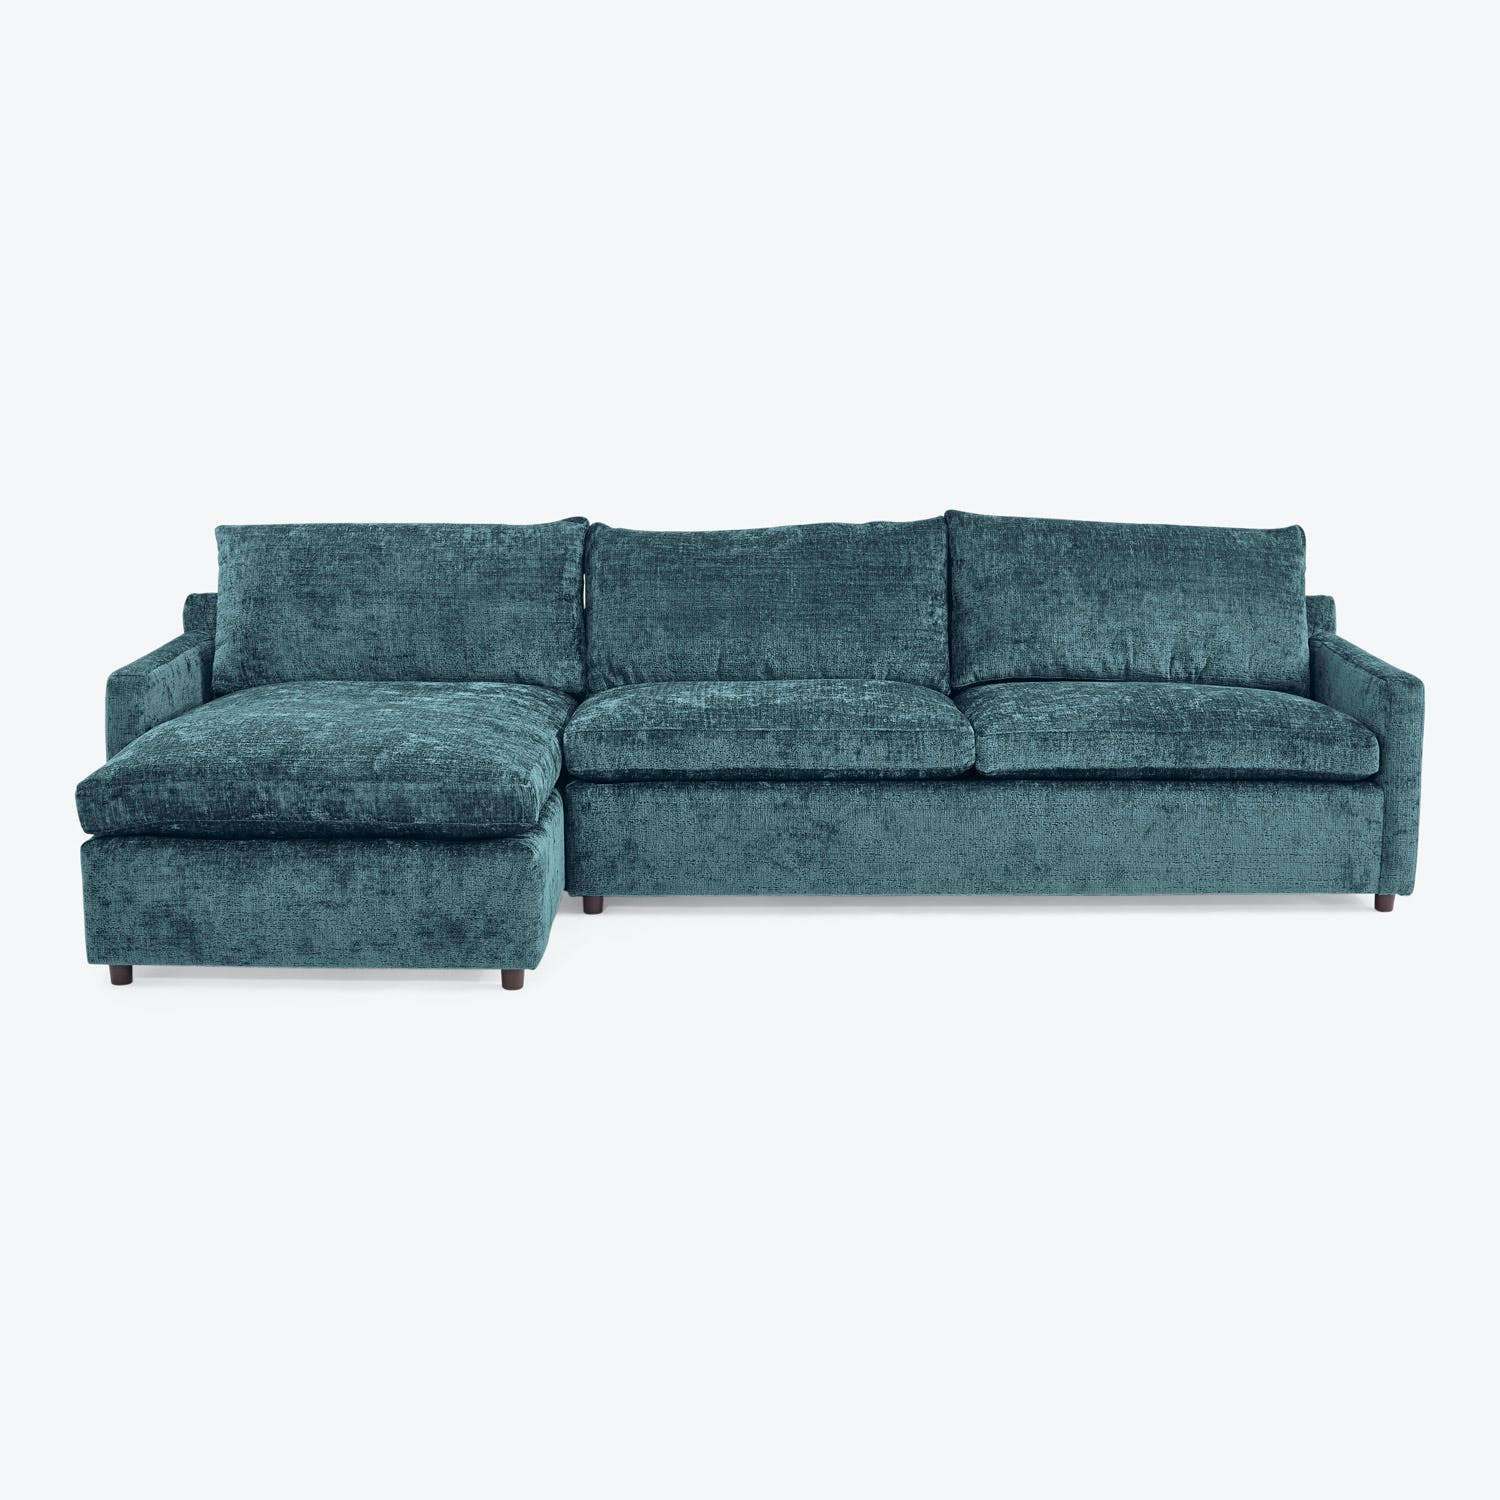 Product Image - Lucali Sectional Sleeper Left Arm Facing